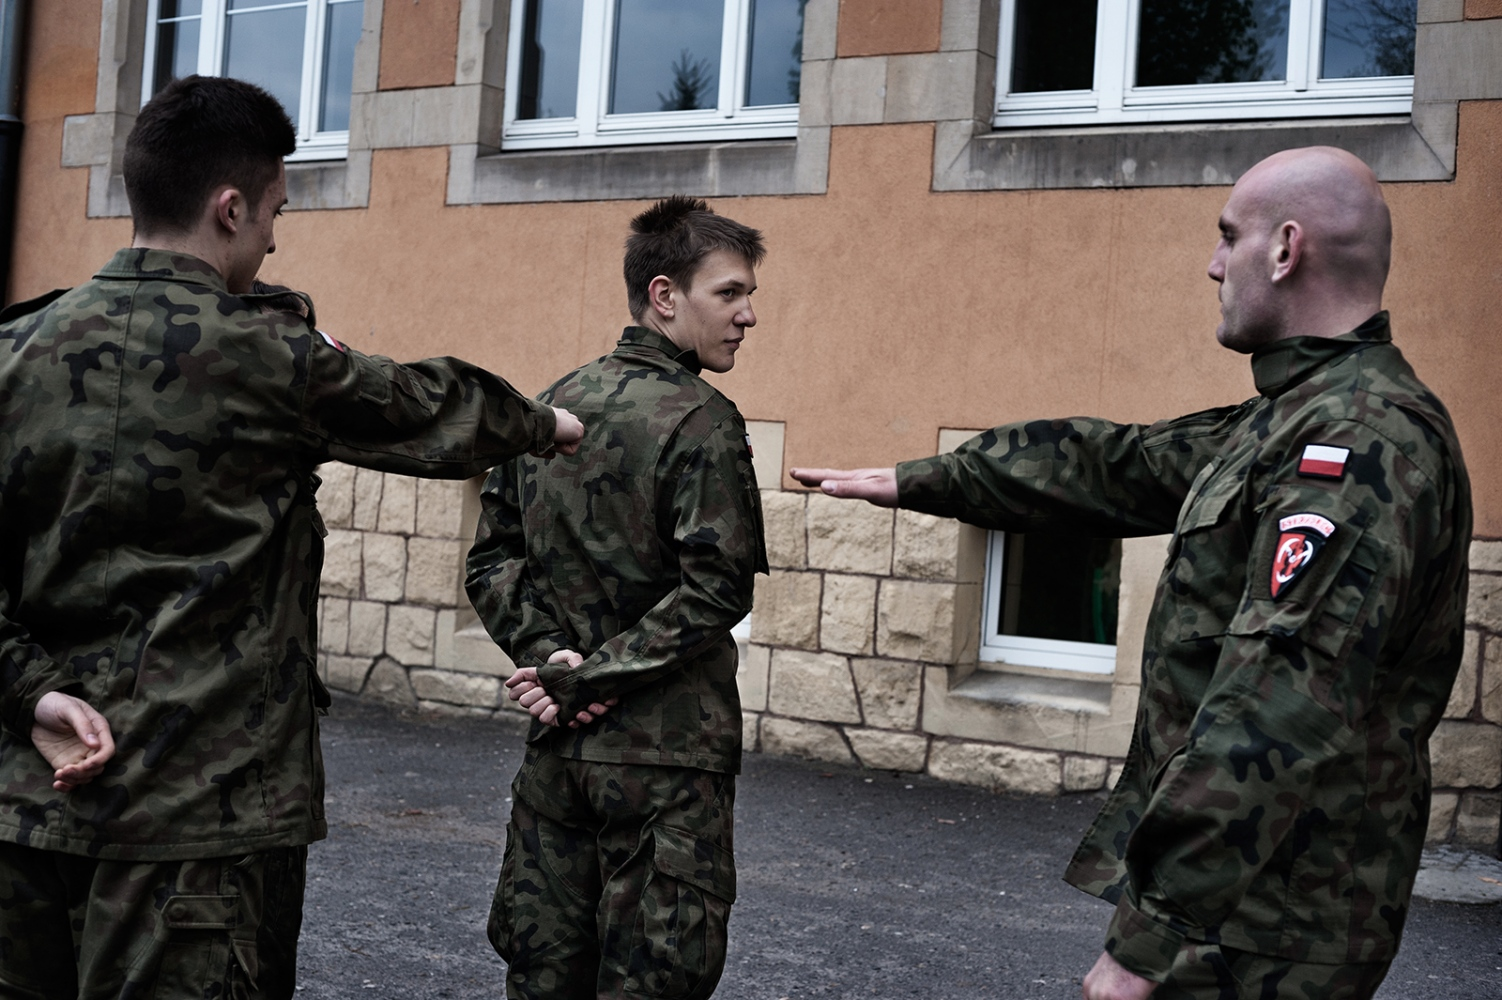 """Students from the public High School in Brzeg during the military training under the supervision of Sebastian Lipinski, the instructor in charge of the Unit 3060. Brzeg 2017 """"The discipline and military training are very important. The values we want to convey are summarized in three words: God, Honor and Fatherland. We promote integrity by taking the extinct Unbreakable Soldiers as an example. Each student chooses his referent, learns his biography and puts his nickname of war on the uniform."""" (Sebastian Lipinski) The Unbreakable Soldiers (also called Damned) were members of the National Army, the armed wing of the Polish secret State during the Second World War. Persecuted by the communist regime, today they are elevated to the rank of national heroes. However, some were directly involved in murders of Polish civilians of Belarusian origin – crimes that took place in northeastern Poland 70 years ago. Many Poles avoid talking about these issues, while current governmental instances minimize the magnitude of those events or question the veracity of some testimonies."""